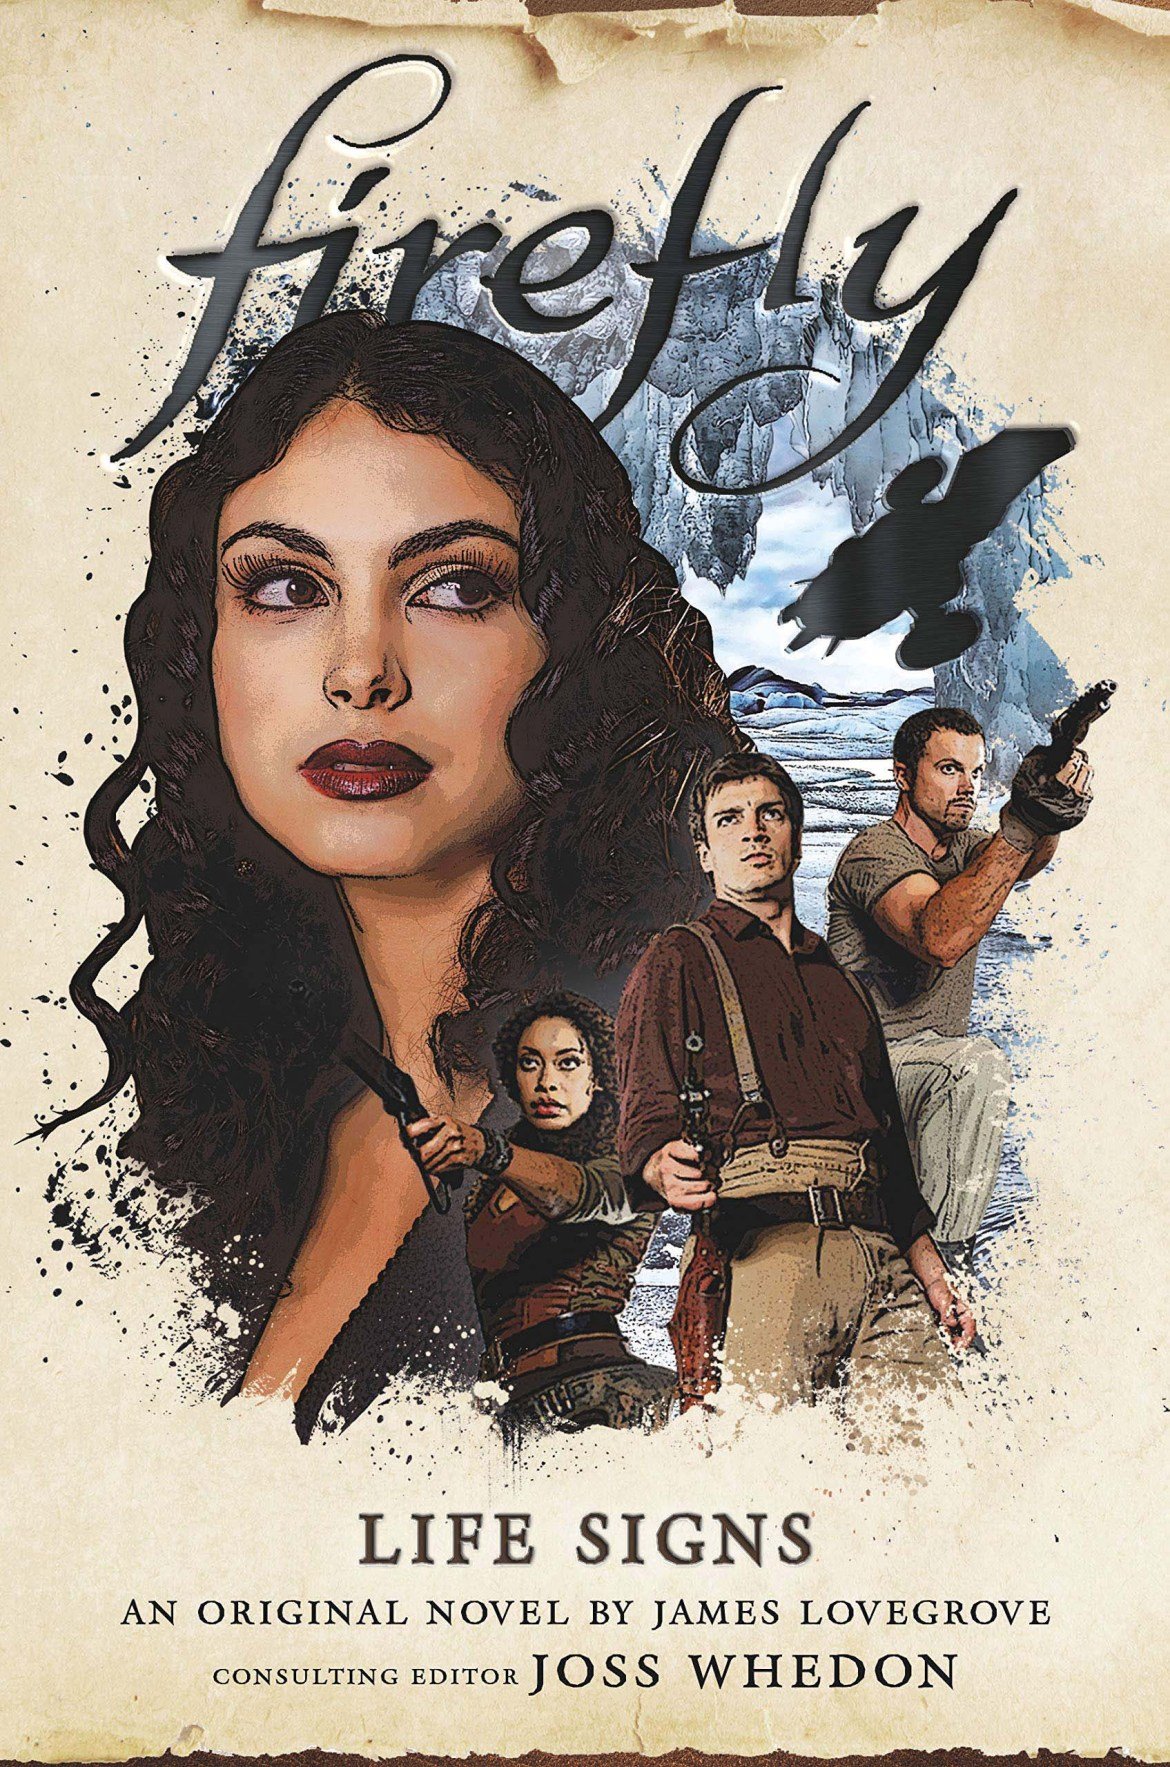 FIREFLY-LIFE-SIGNS Titan Comics March 2021 Solicitations